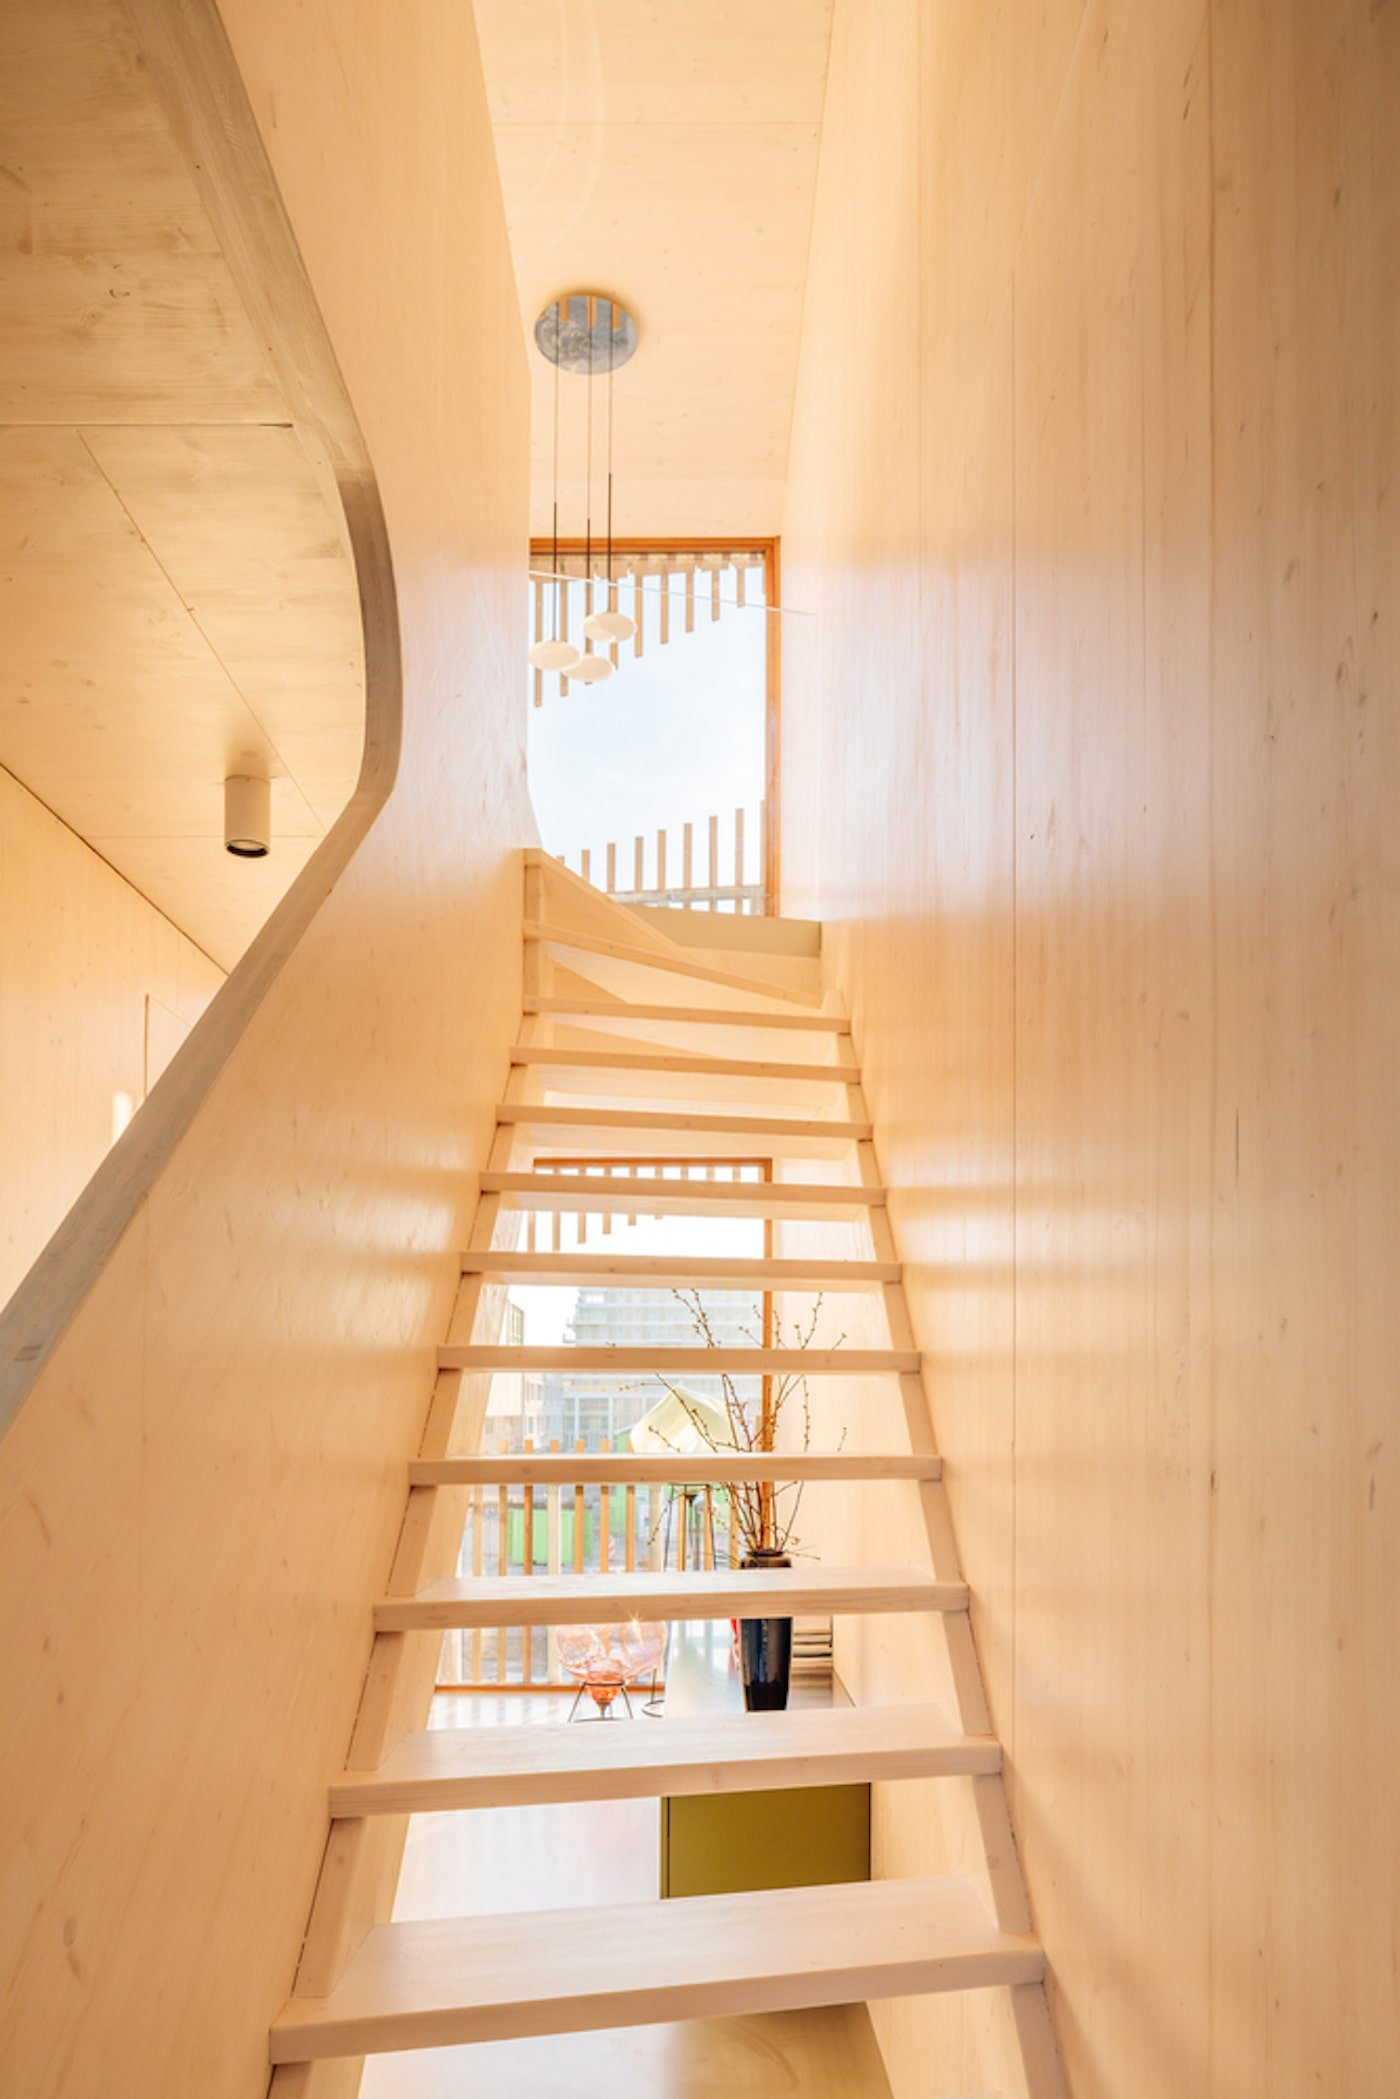 Timber stairs with open treds and timber stair well